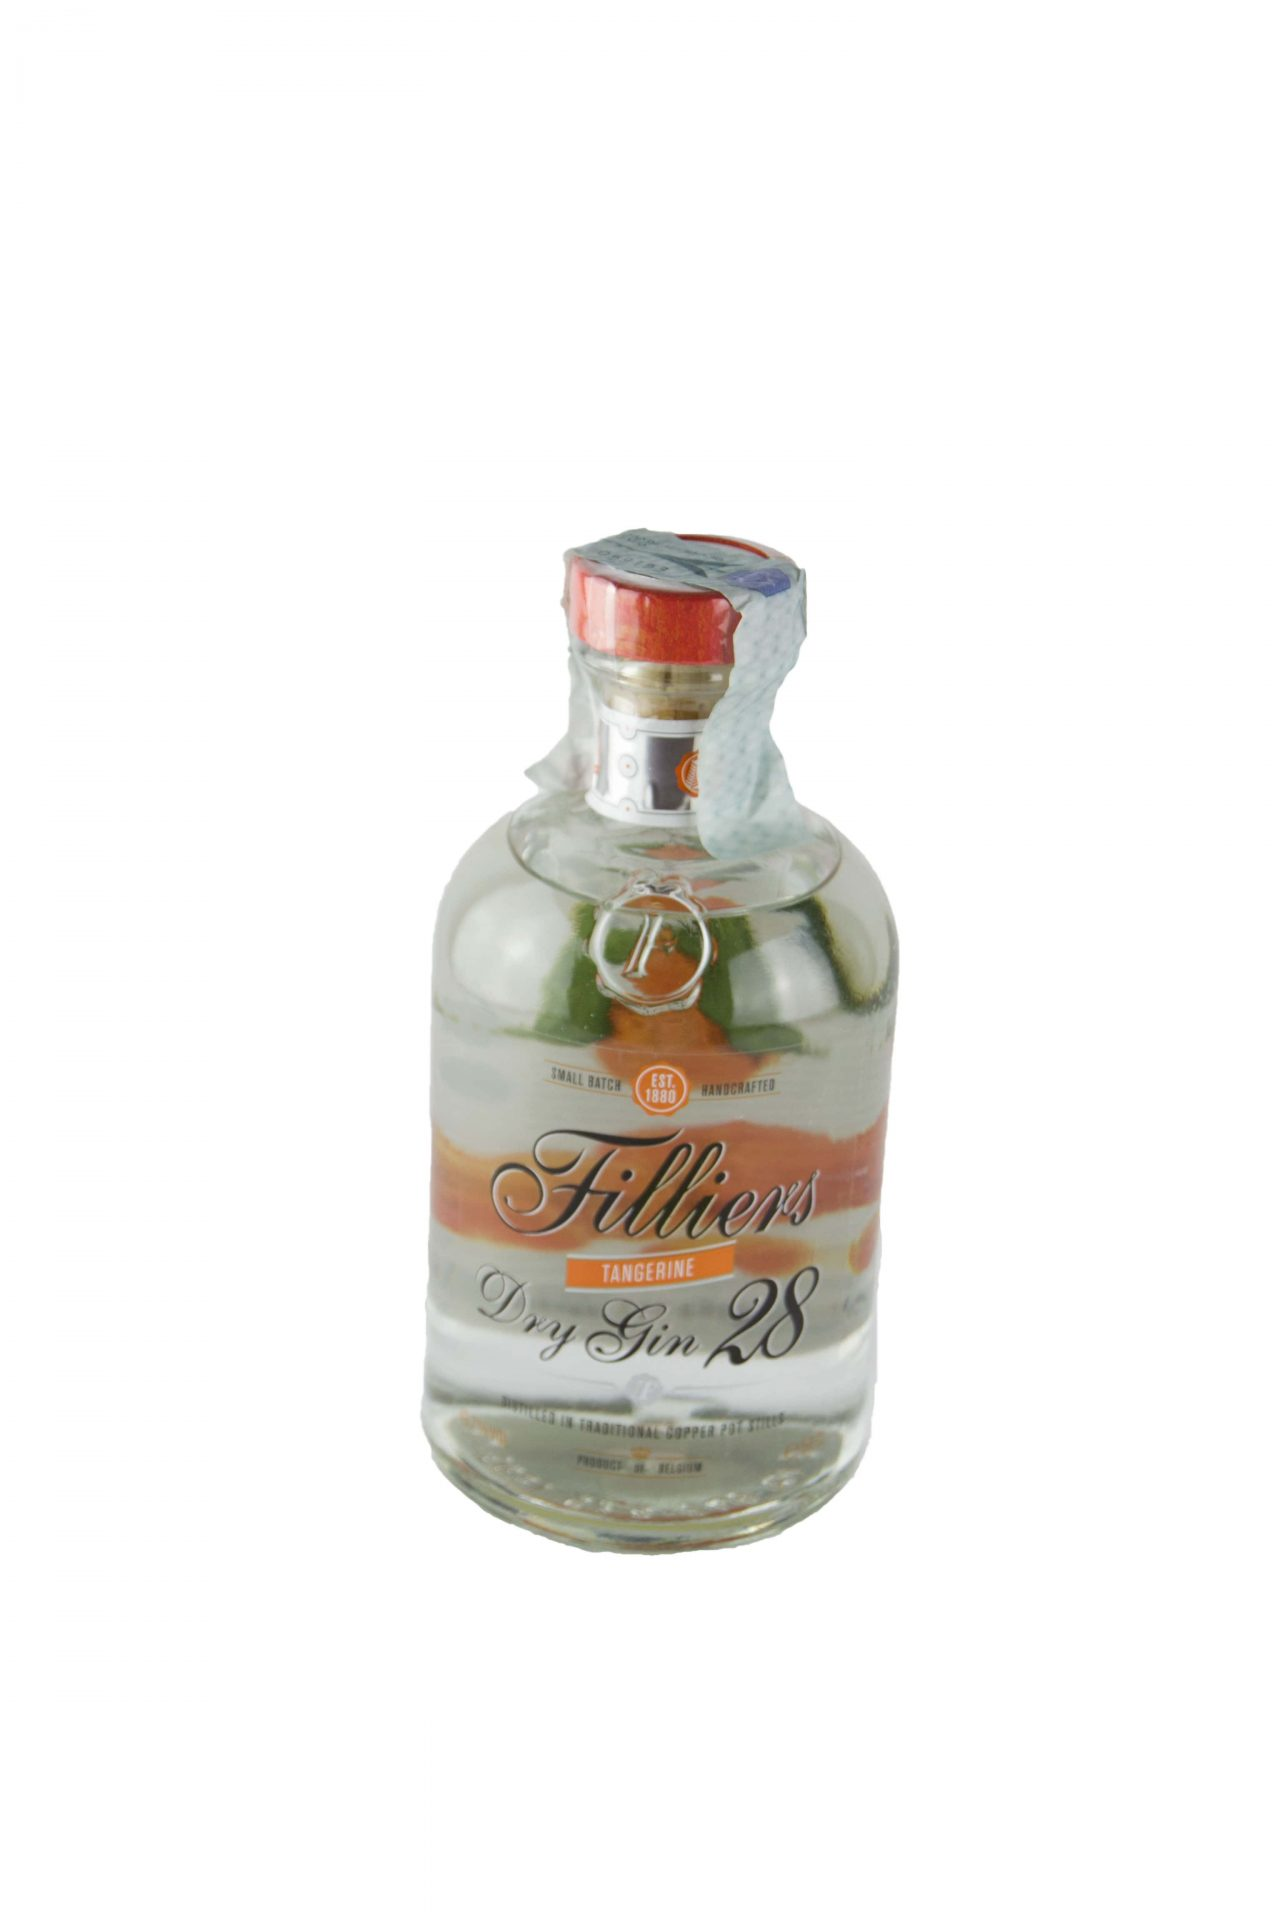 Filliers Dry Gin 28 Tangerine – Filliers